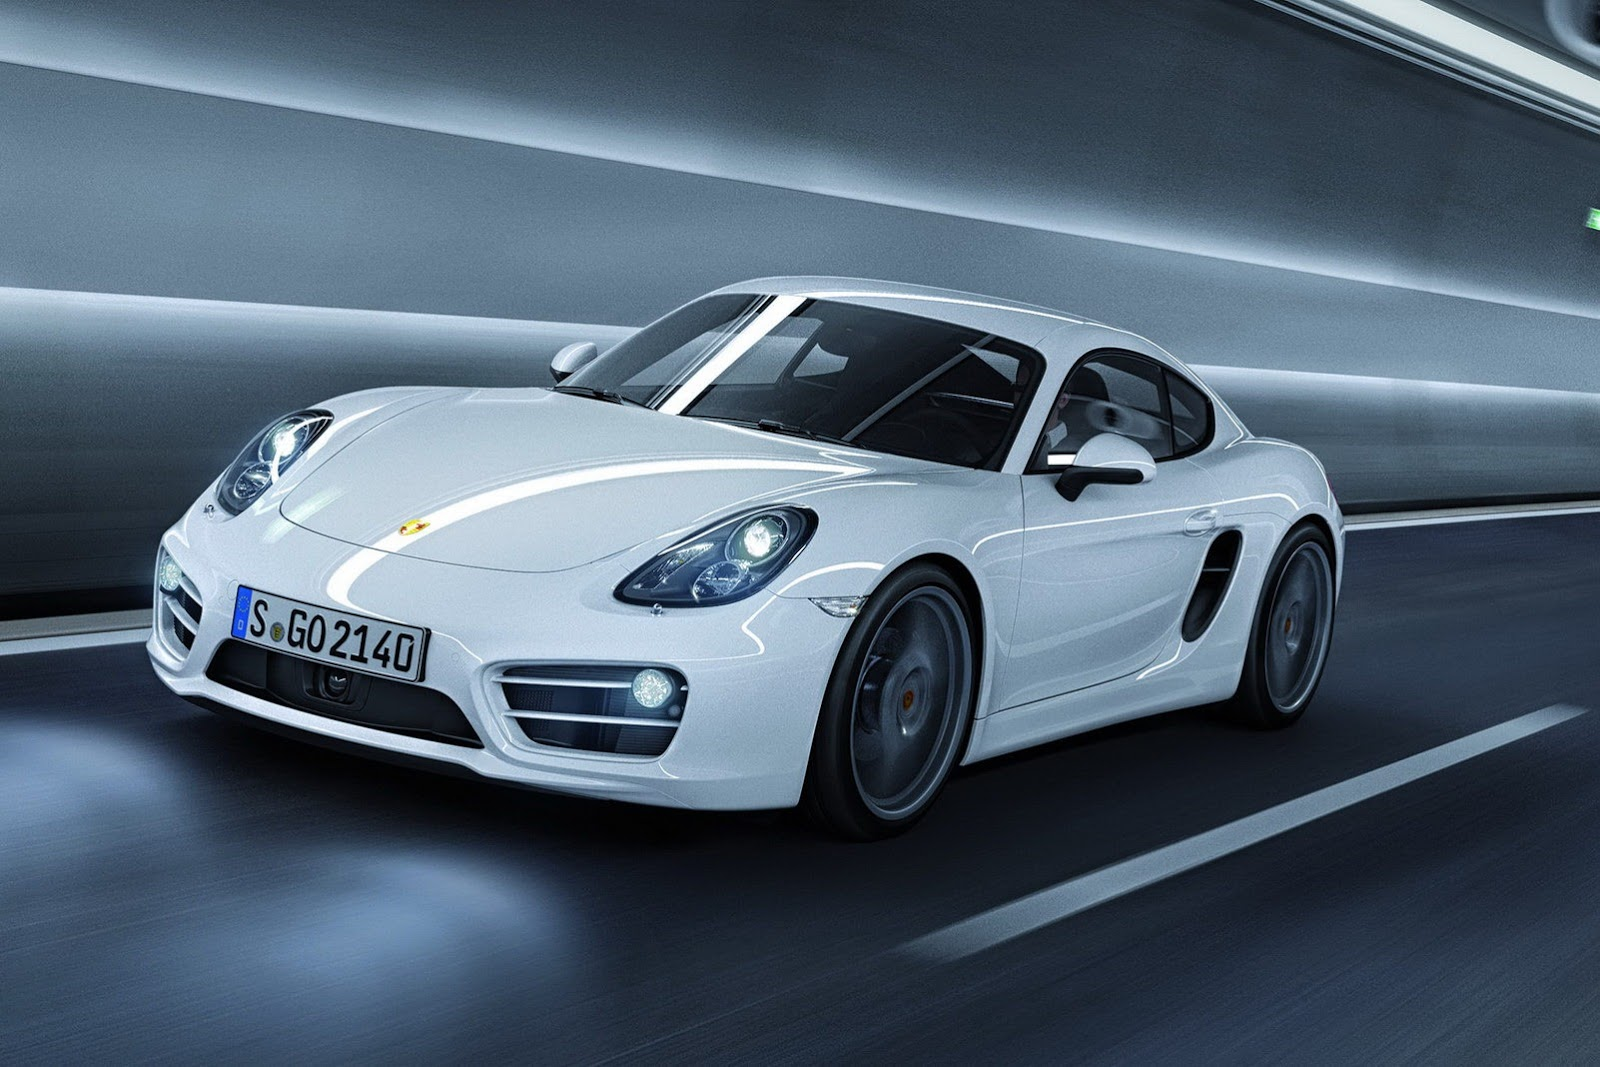 New 2014 porsche cayman debuts in la video autoevolution - Porche para autos ...